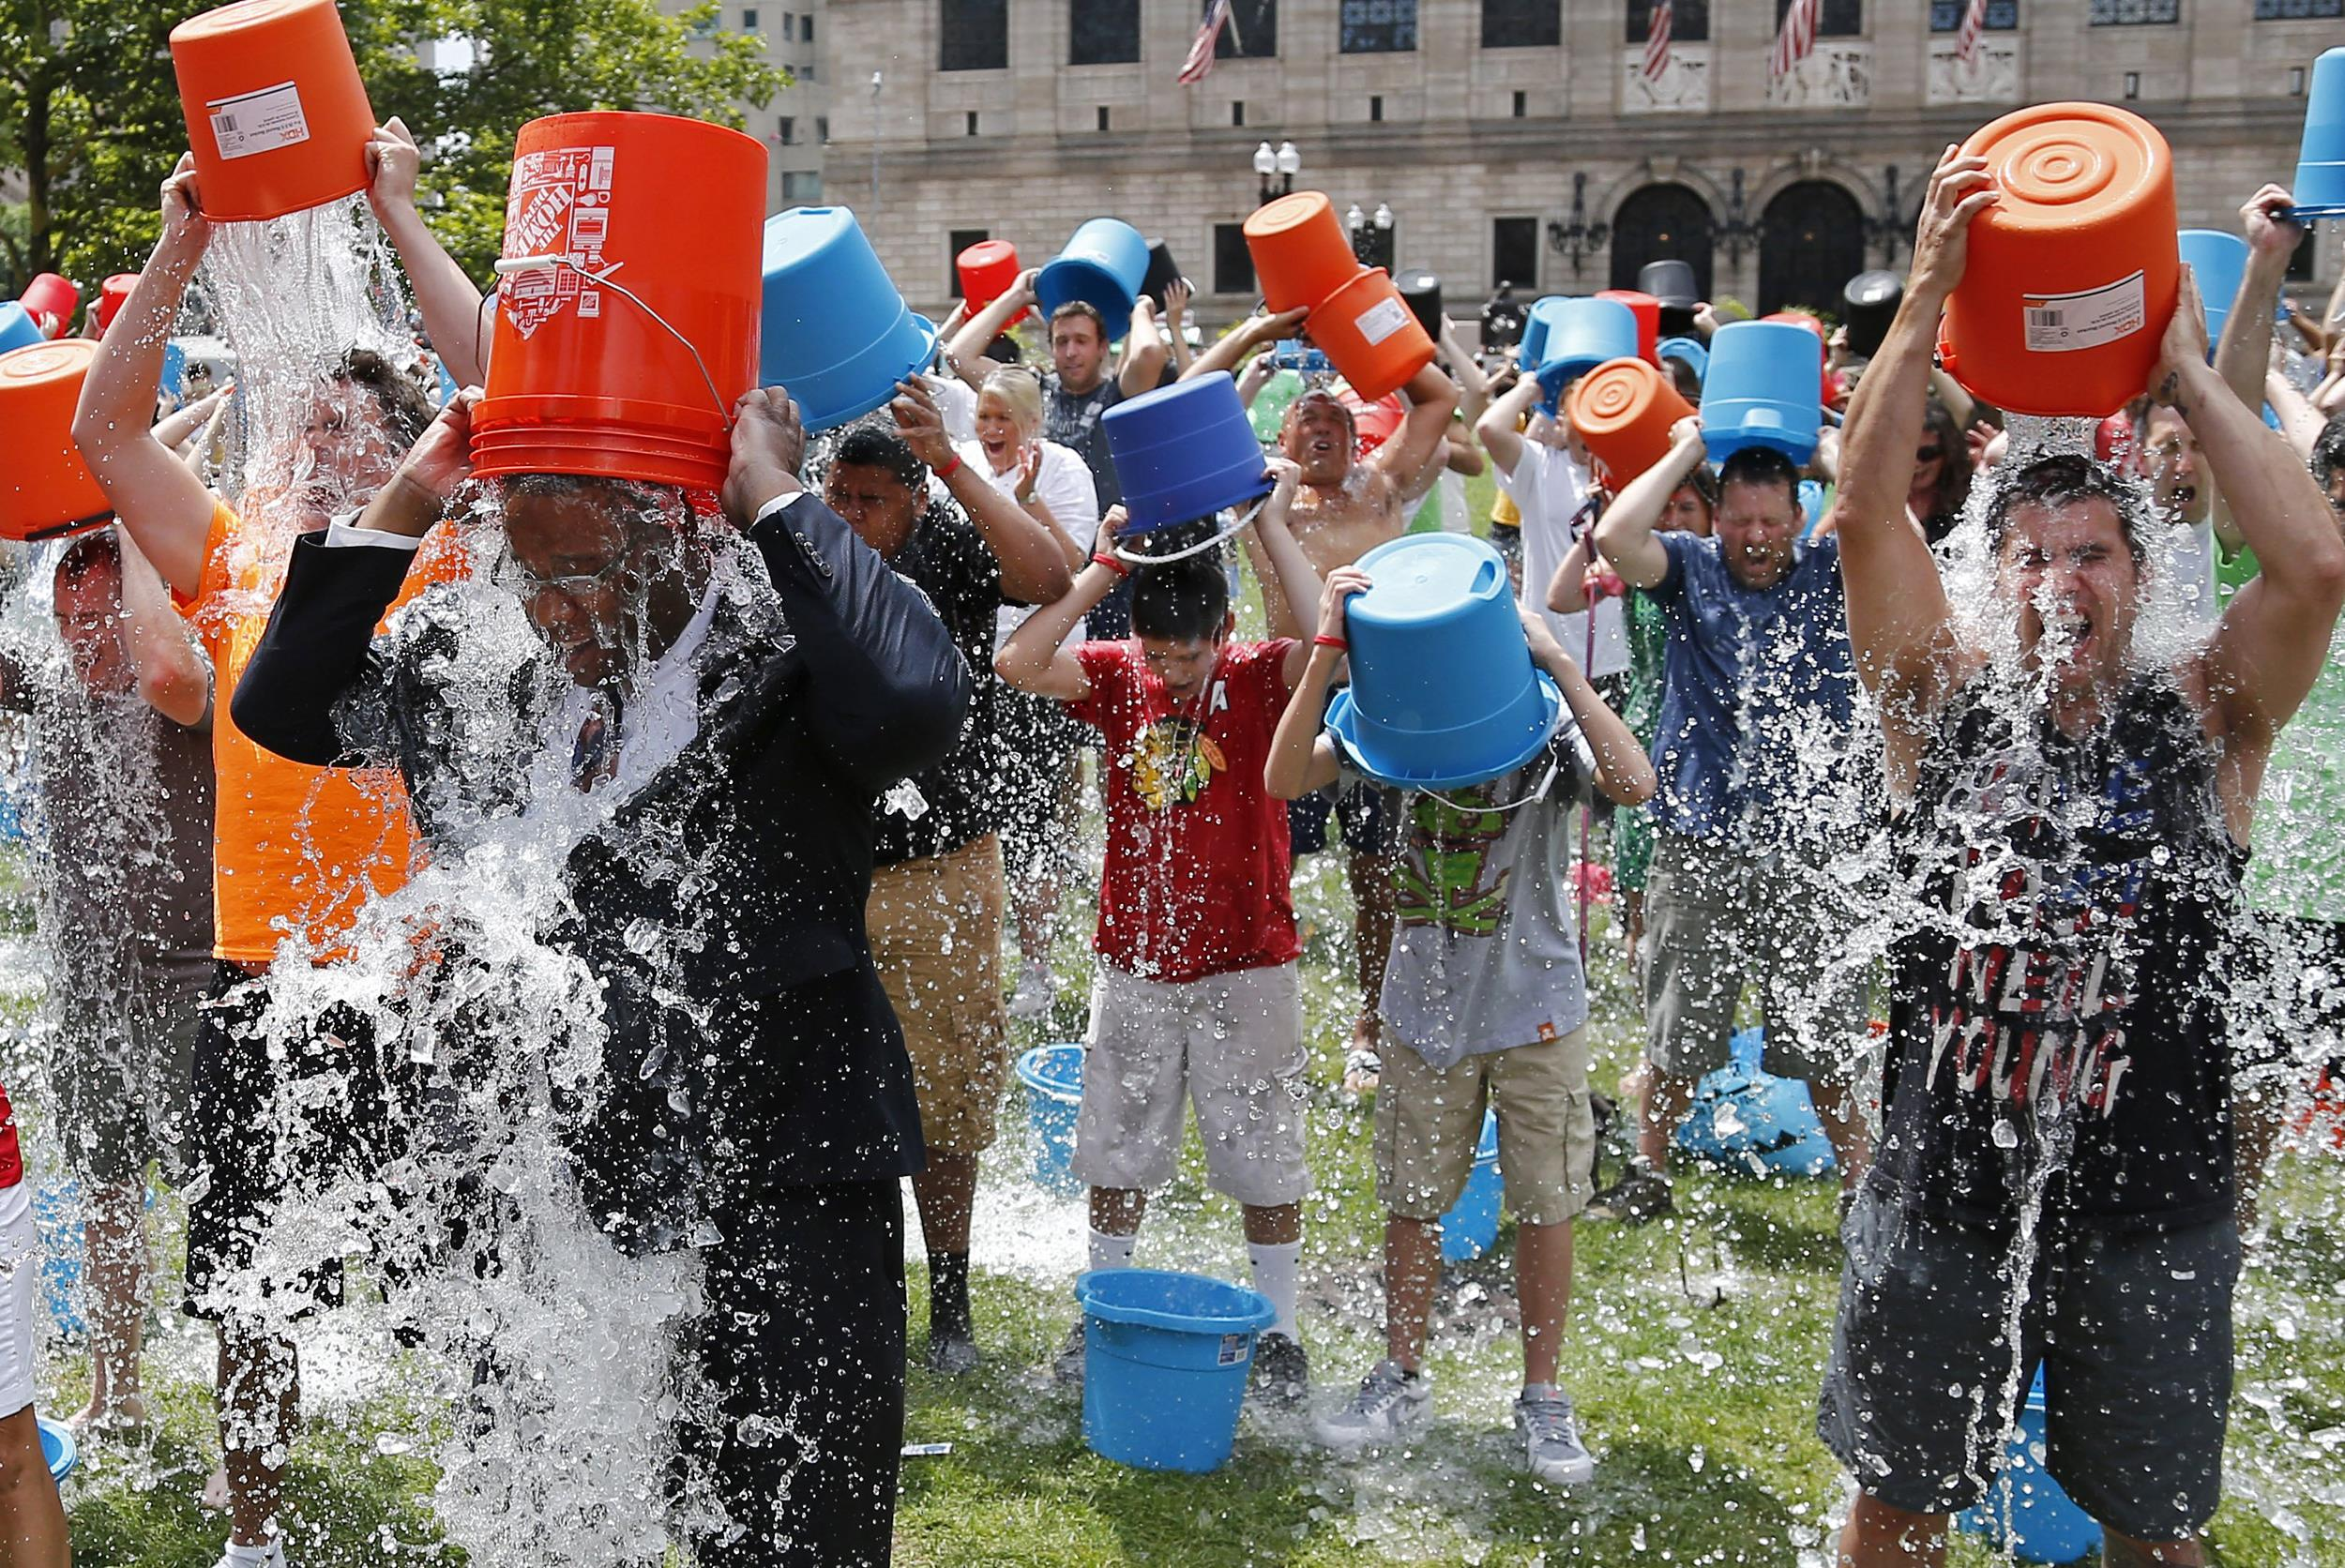 The infamous Ice Bucket Challenge as seen in a charity fundraising in 2014, which helped raise money and awareness for the disease Amyotrophic Lateral Sclerosis. Photo source:  Josephine Clackson's blog .